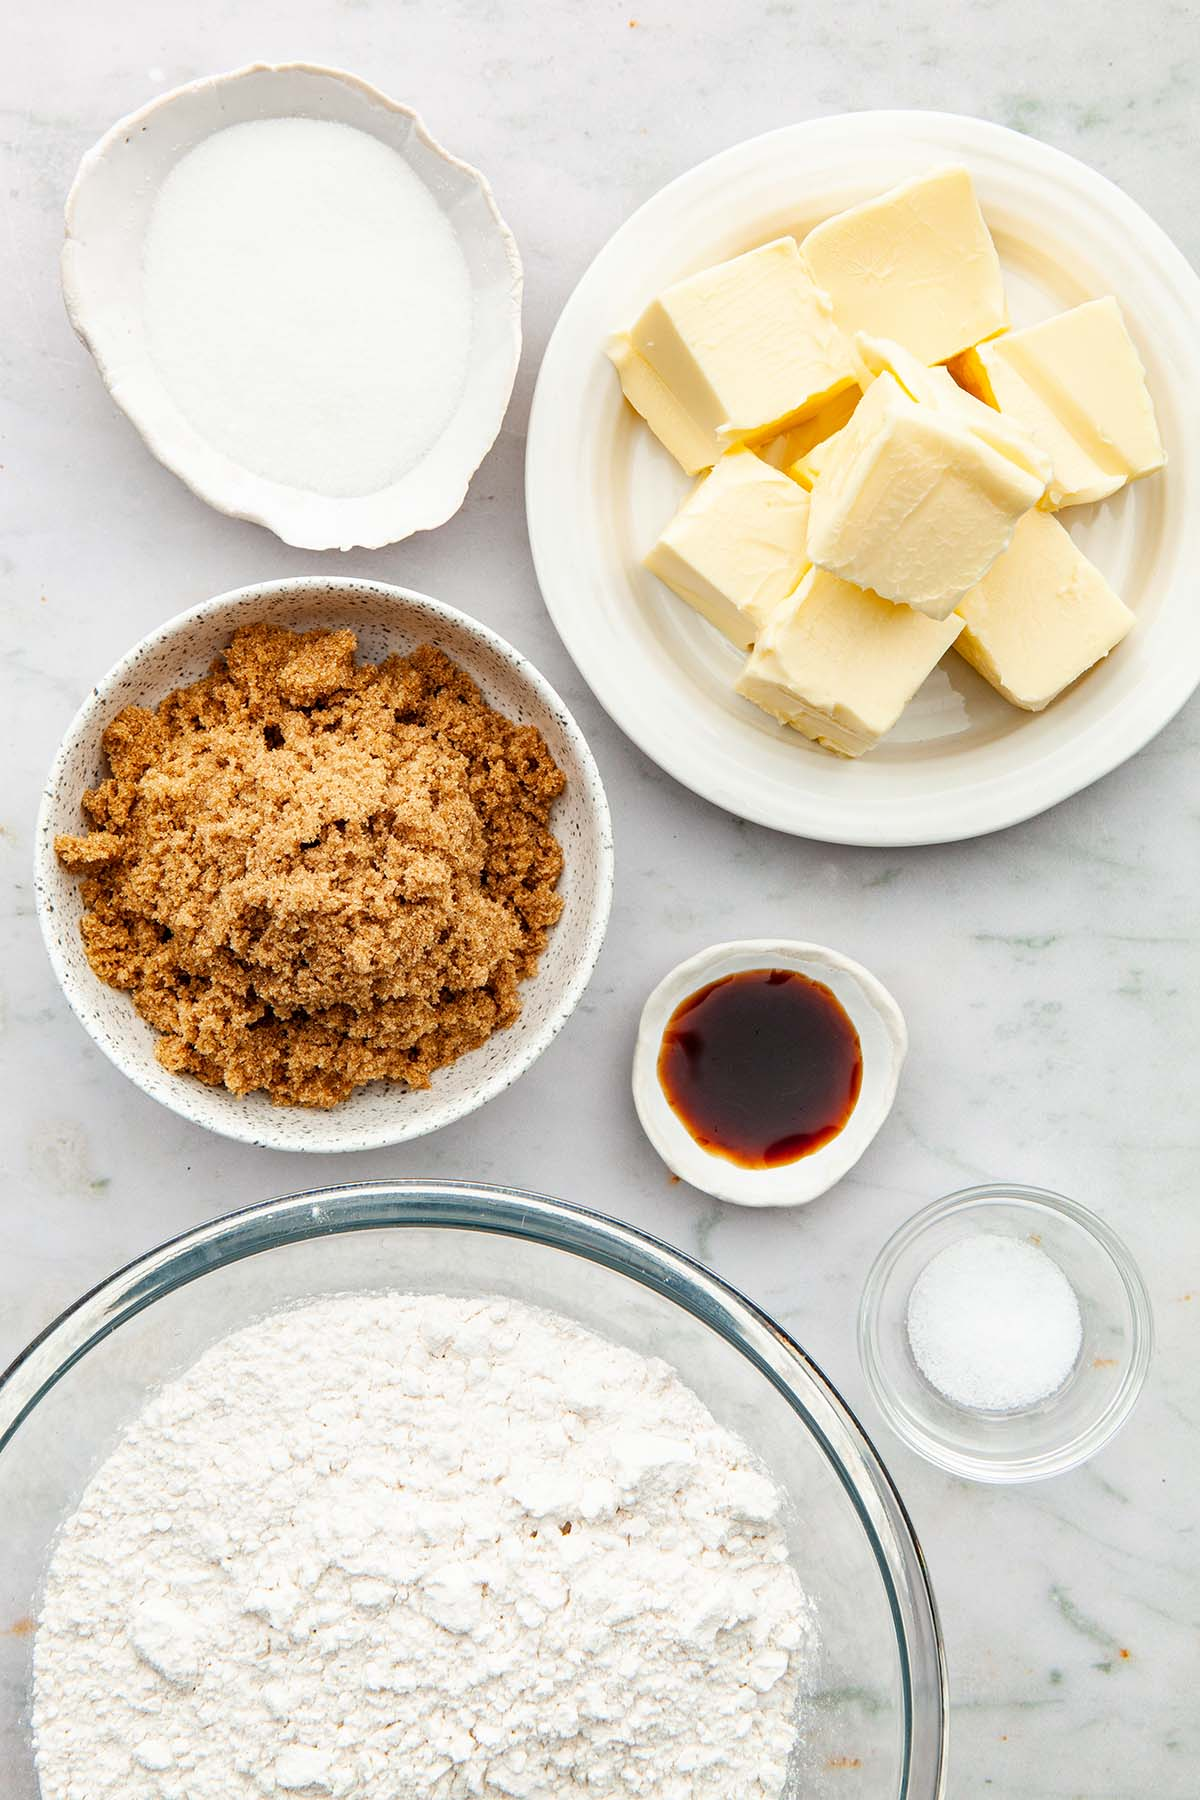 Ingredients to make stamped brown sugar shortbread cookies.